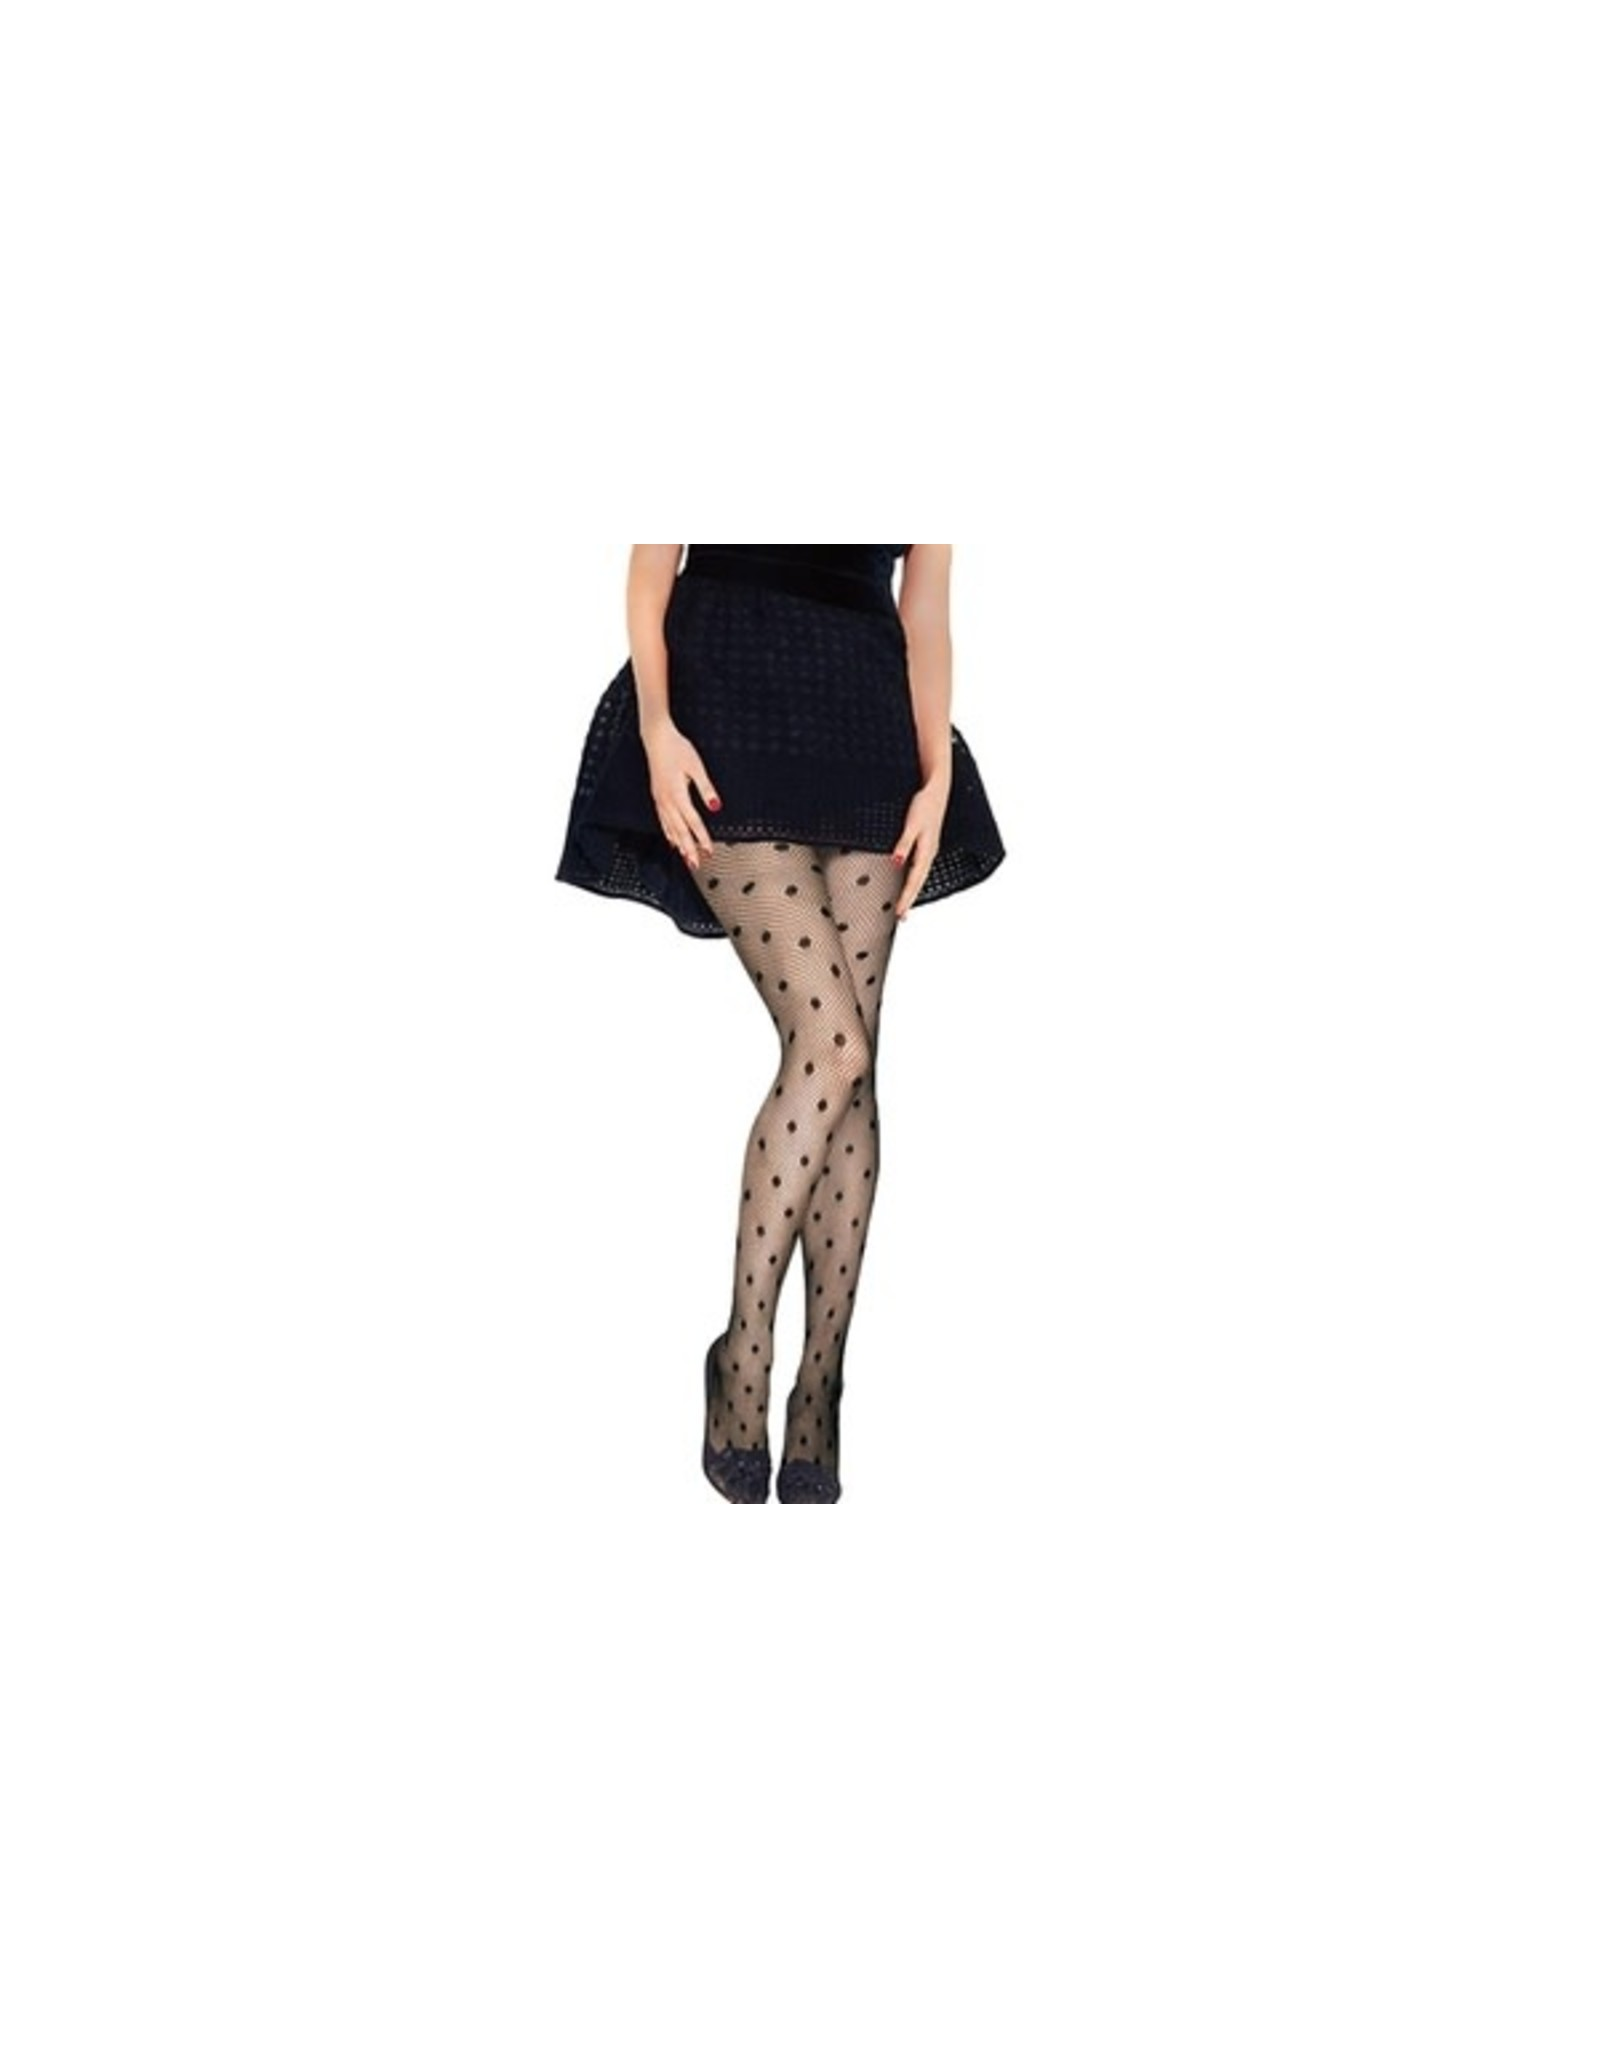 WOMEN'S SEXY FISHNET PANTYHOSE IN BLACK - ONE SIZE